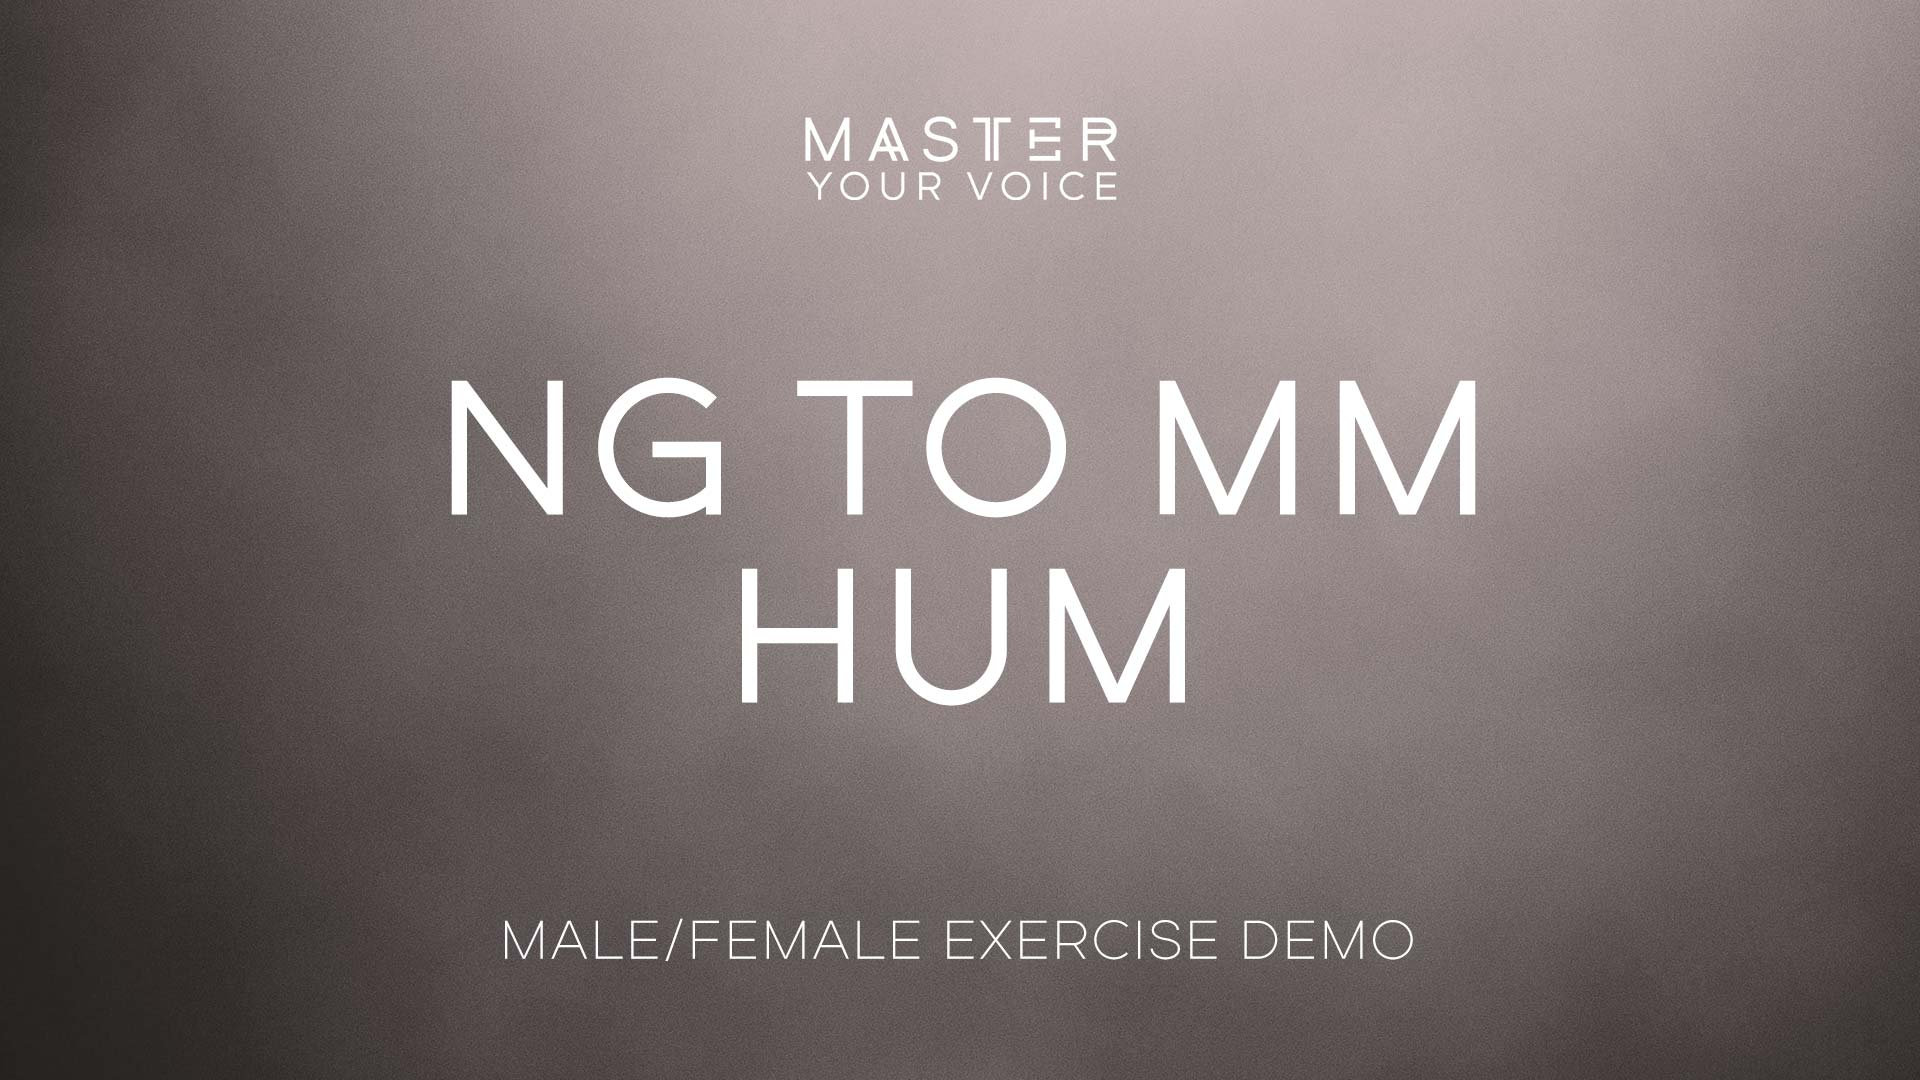 Ng to Mm Hum Exercise Demo